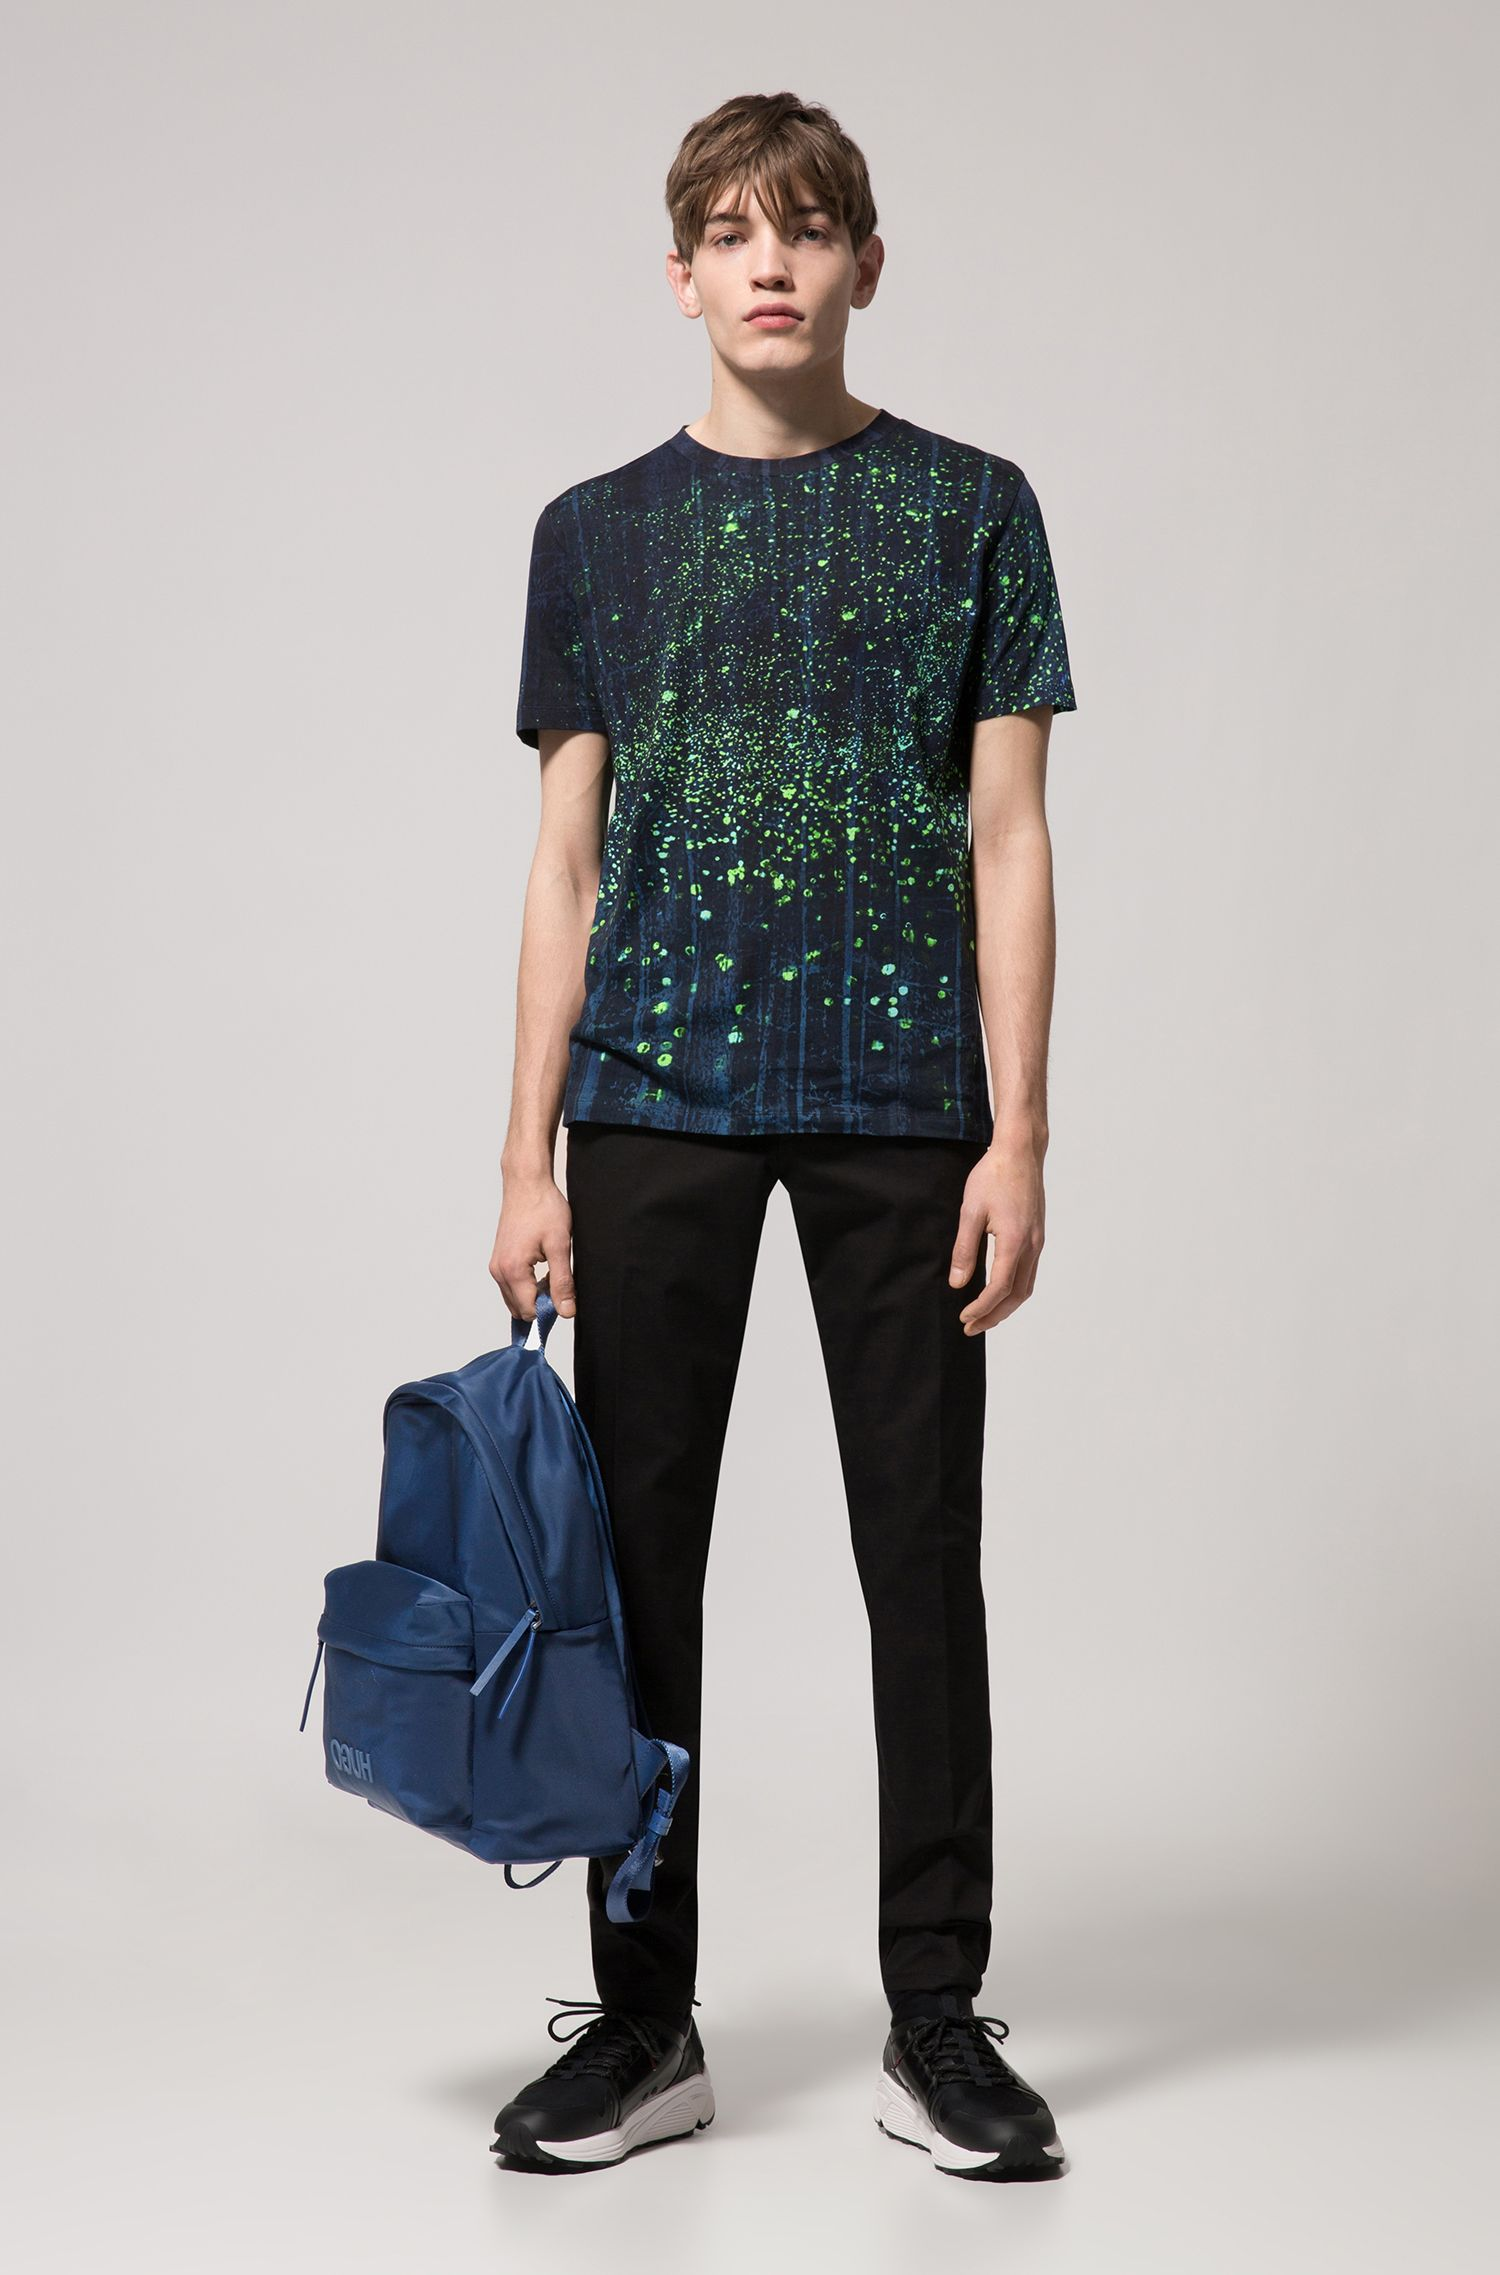 Relaxed-fit cotton T-shirt with firefly artwork, Patterned